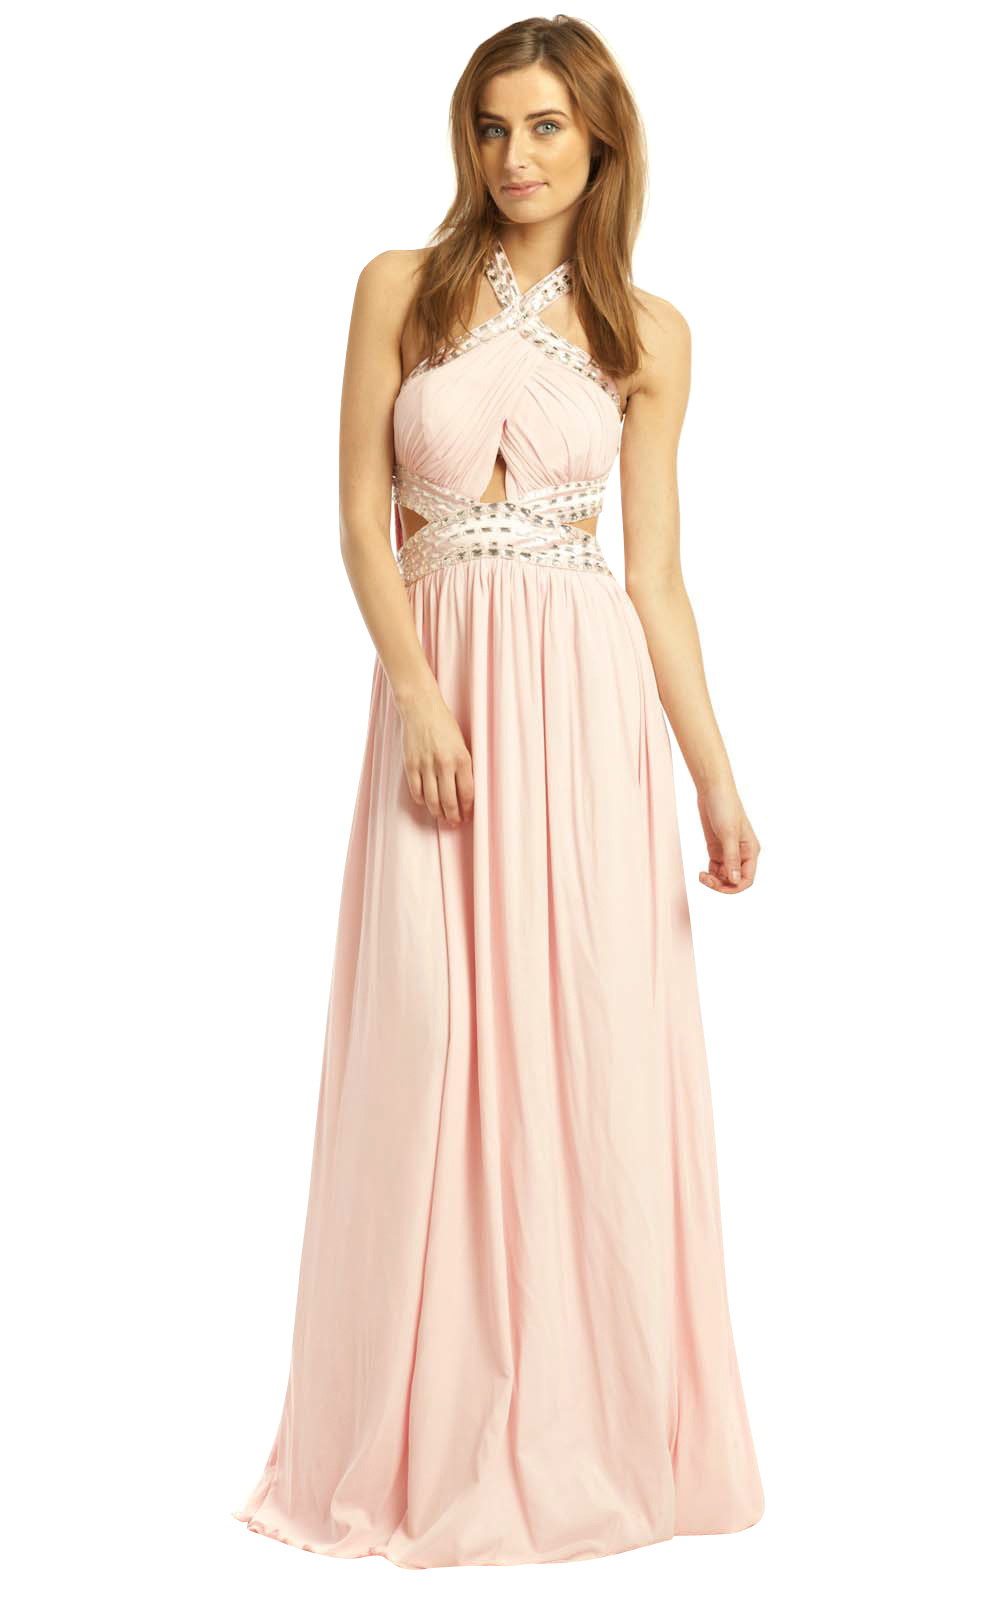 49fe0236a71 IKRUSH Women s Polly Evening Maxi Dress Size in Pink Size 16 ...